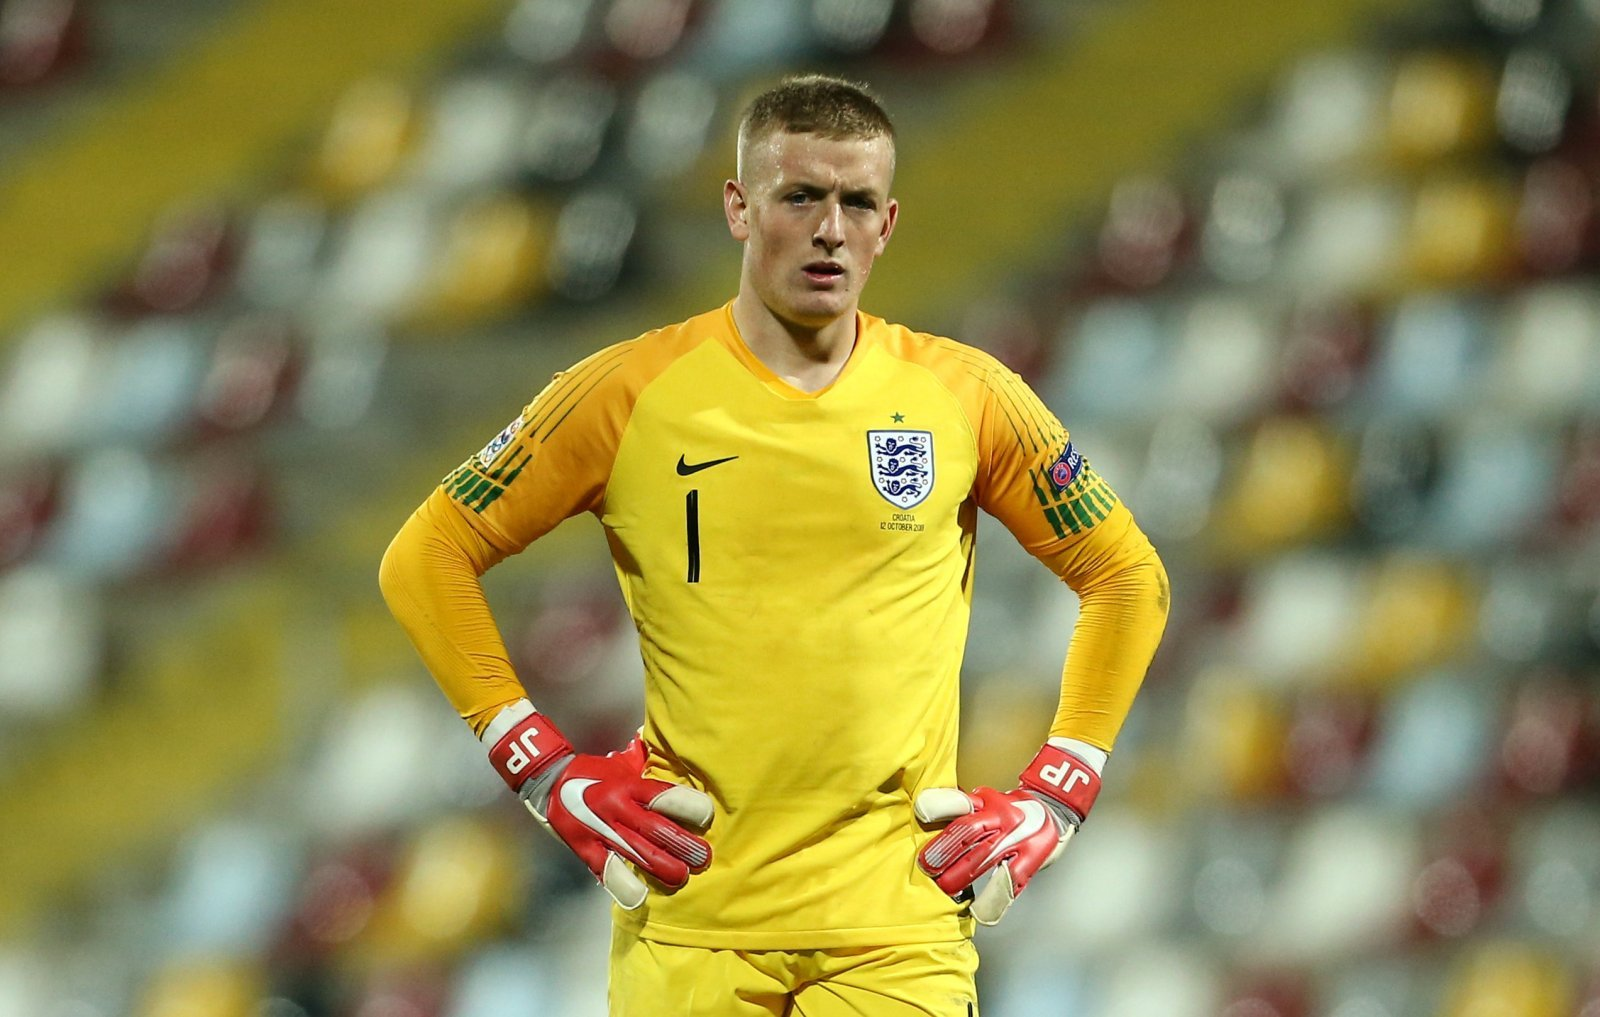 Everton fans have been quick to praise Jordan Pickford